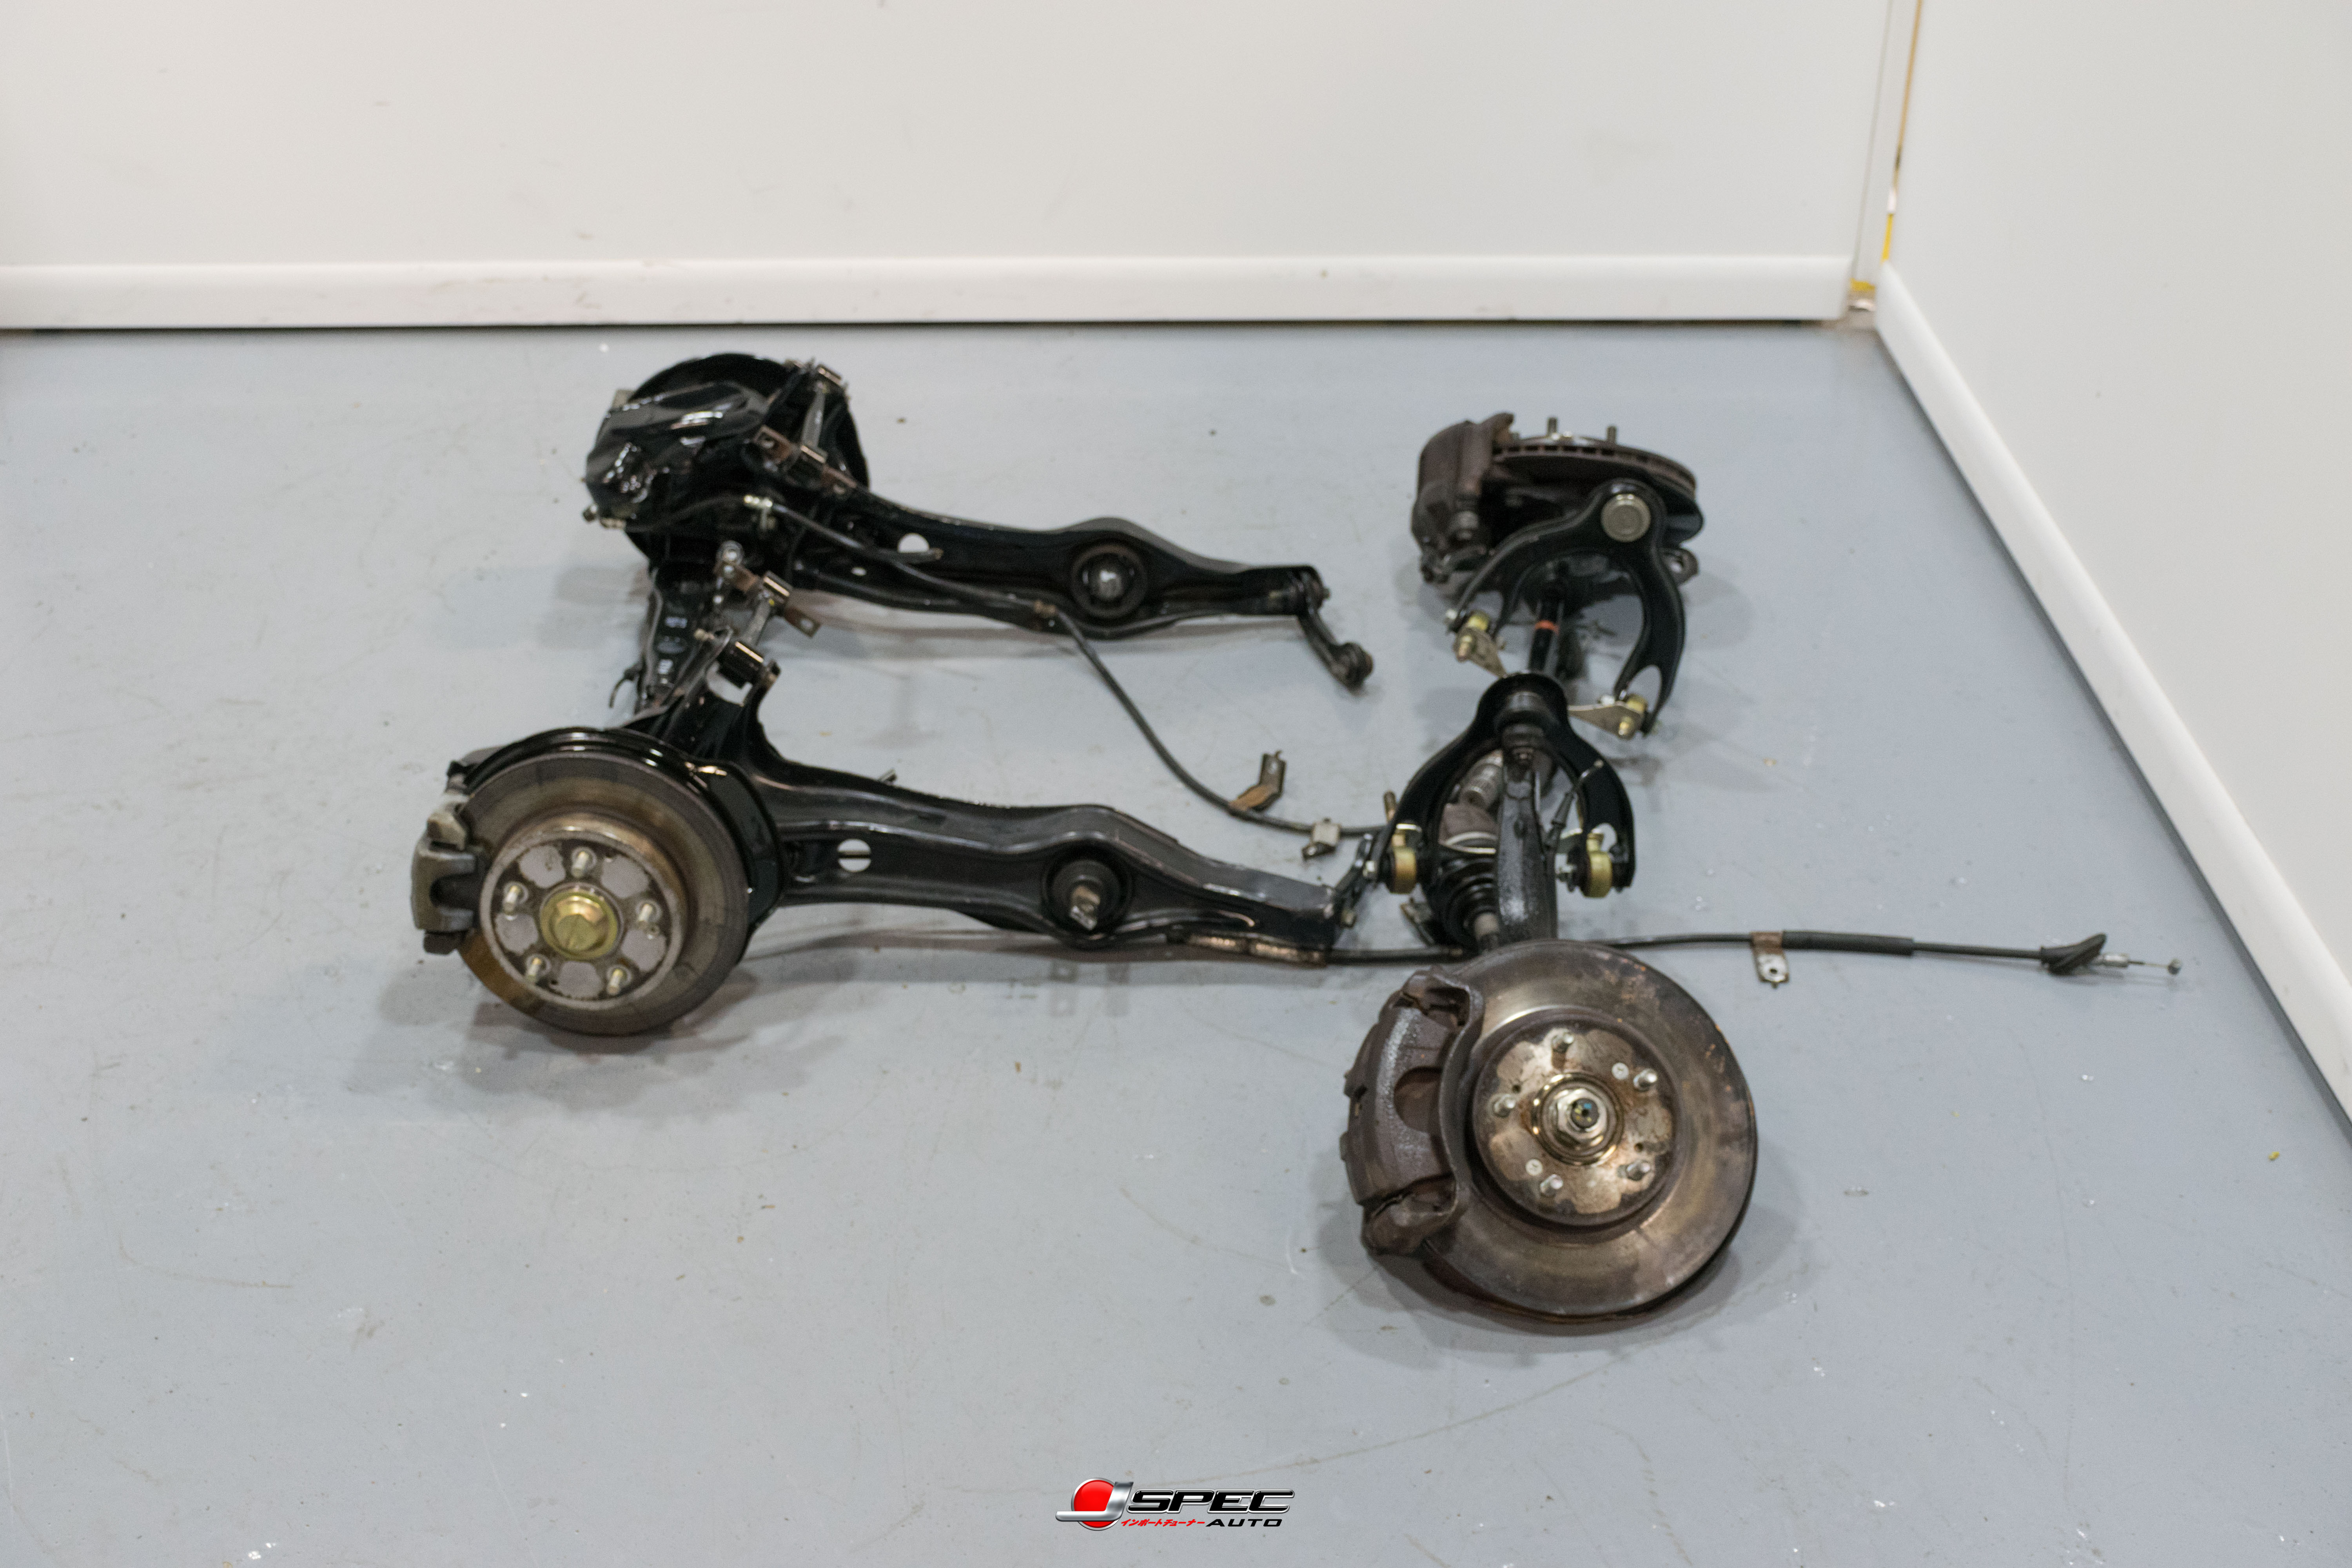 Used Jdm Acura Integra Type R Dc2 5 Lug Brake Conversion With 36mm Hubs And Axles Sample Pictures Brakes J Spec Auto Sports